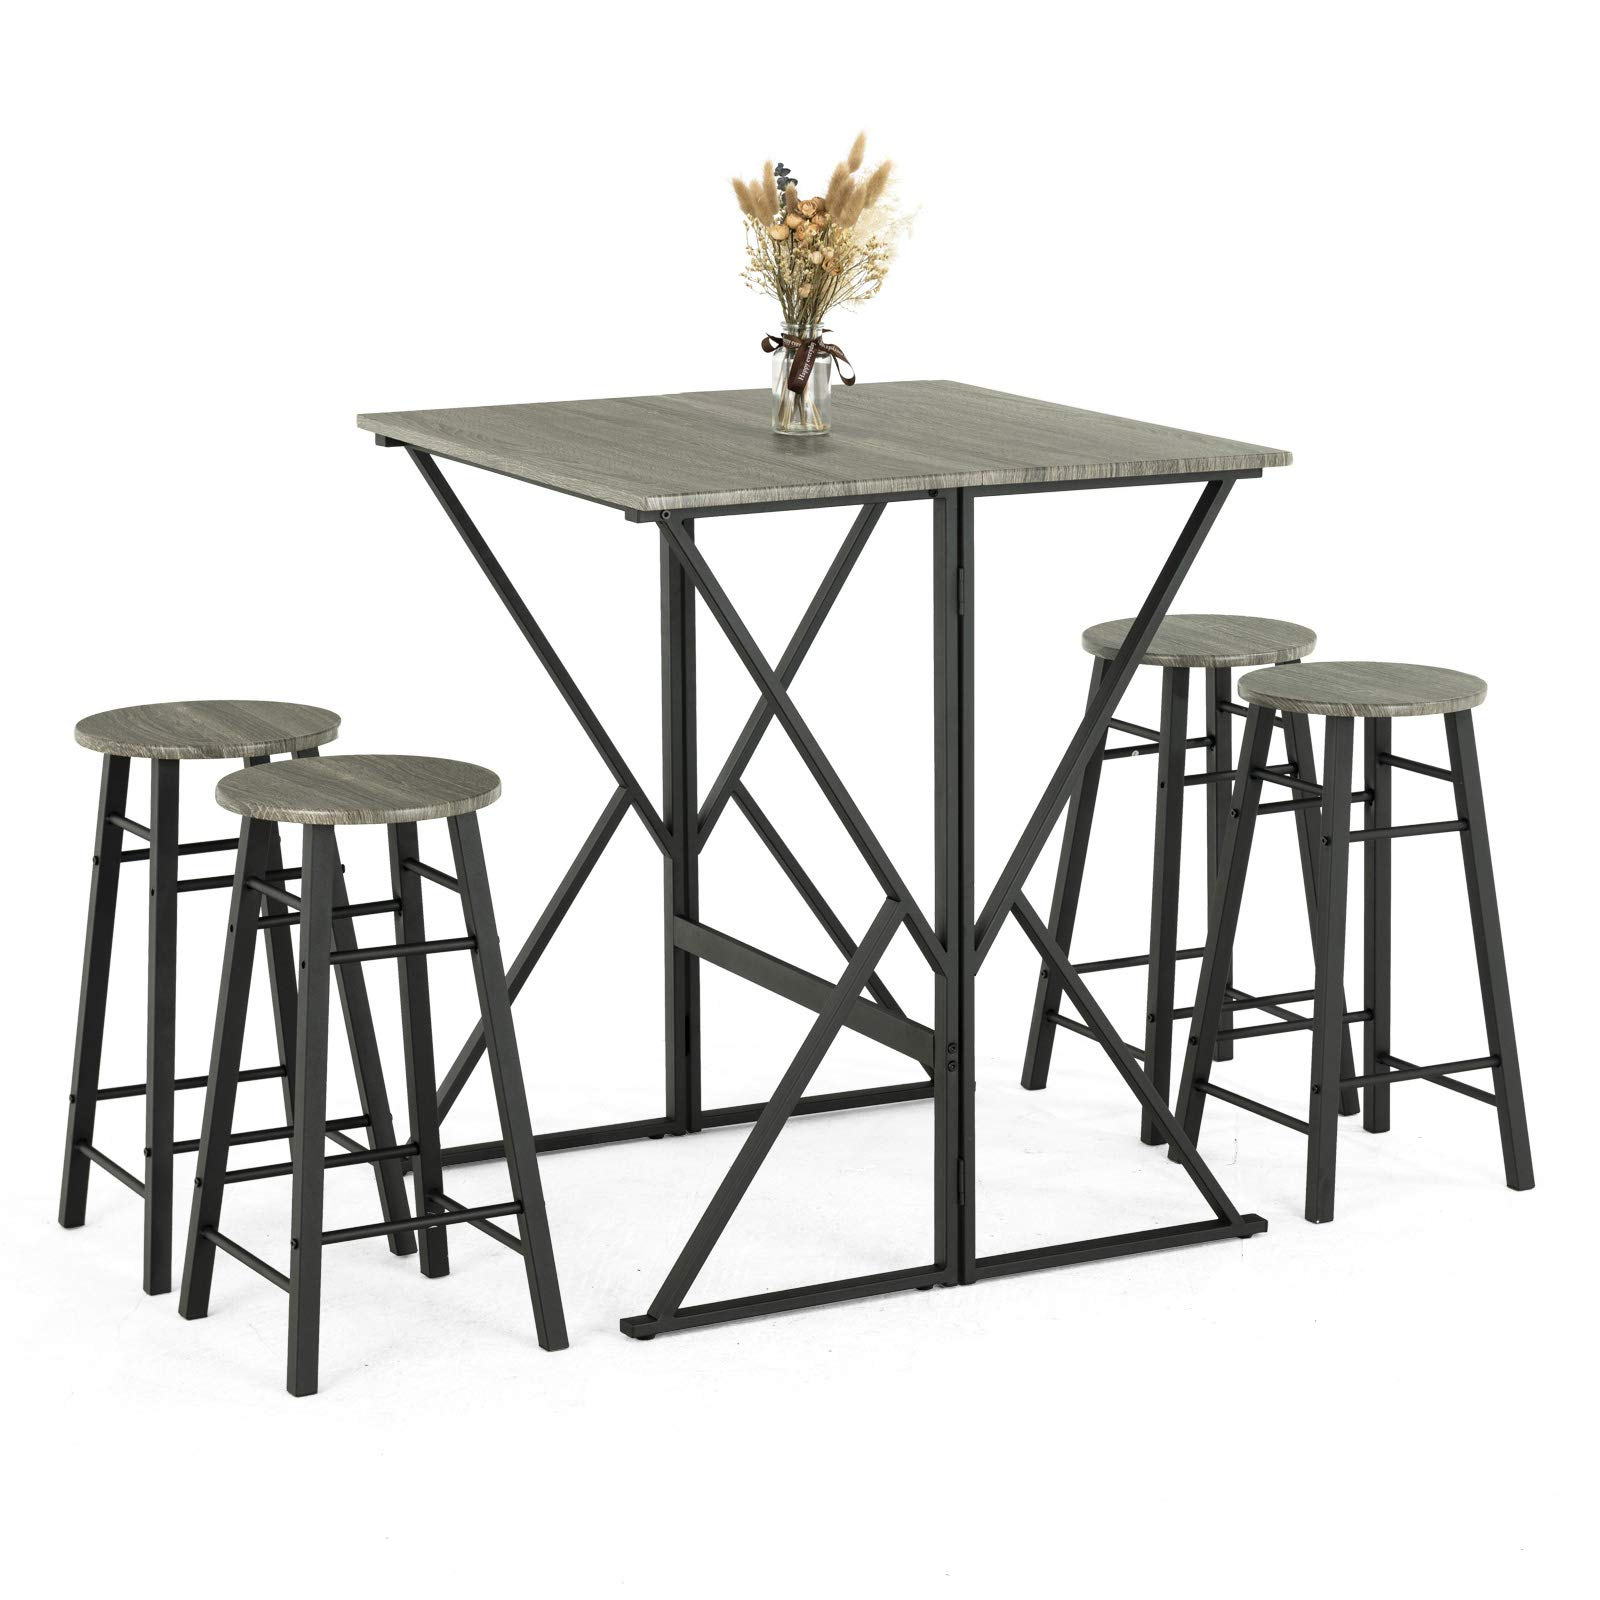 Silver Dining Table And Chairs, Mecor 5 Piece Drop Leaf Pub Dining Table Buy Online In Cambodia At Desertcart